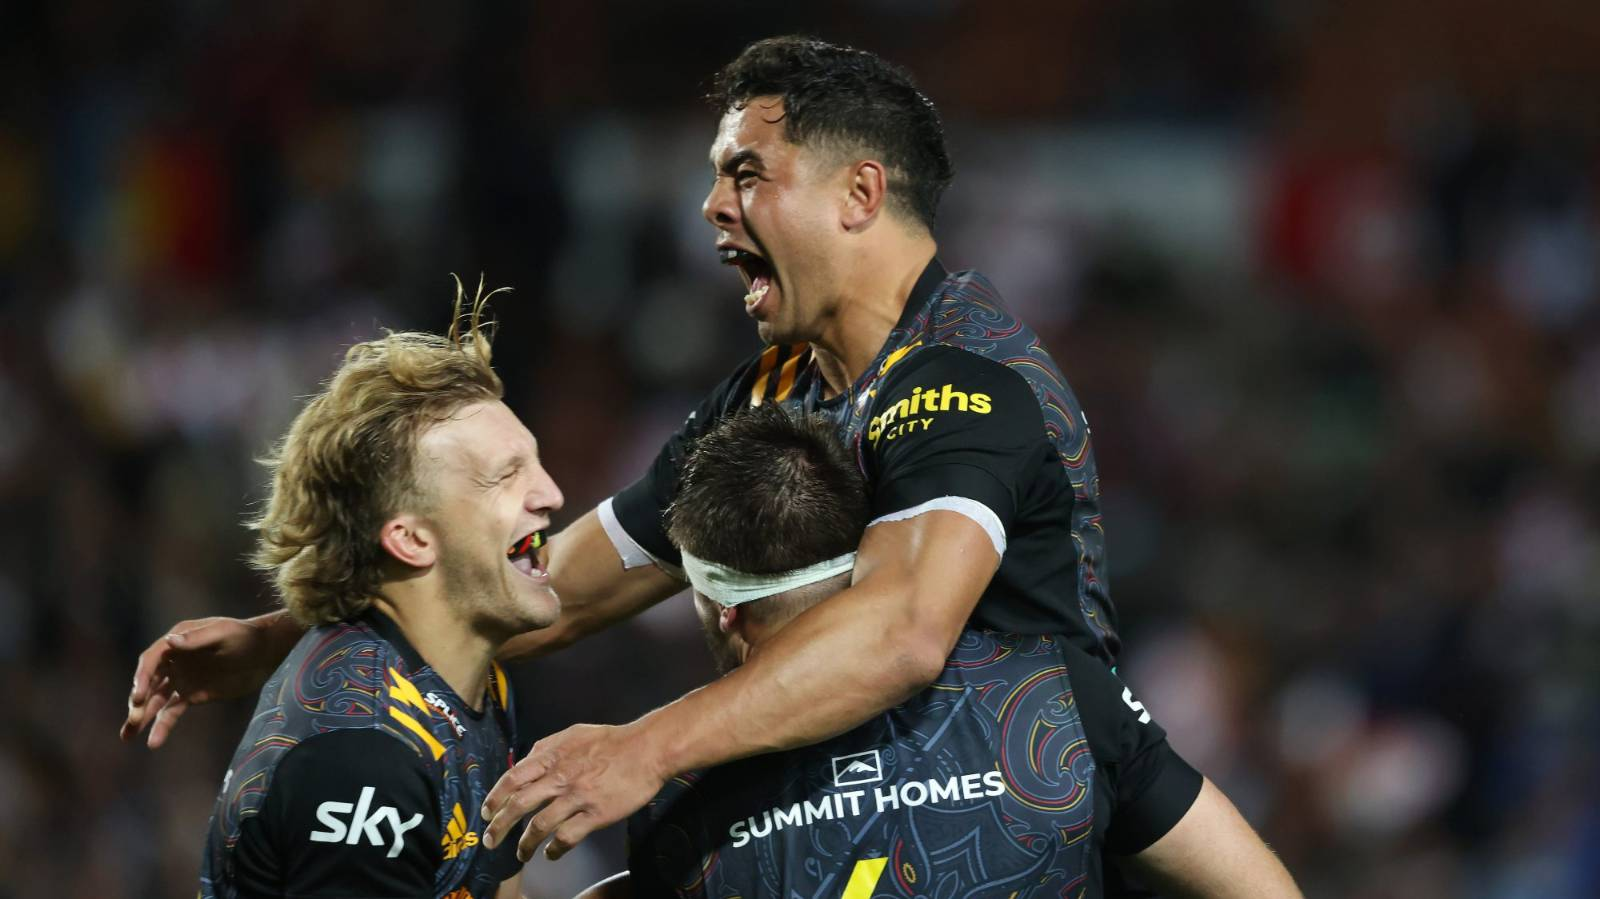 Chiefs revival shows it's people, not money, that will save sport